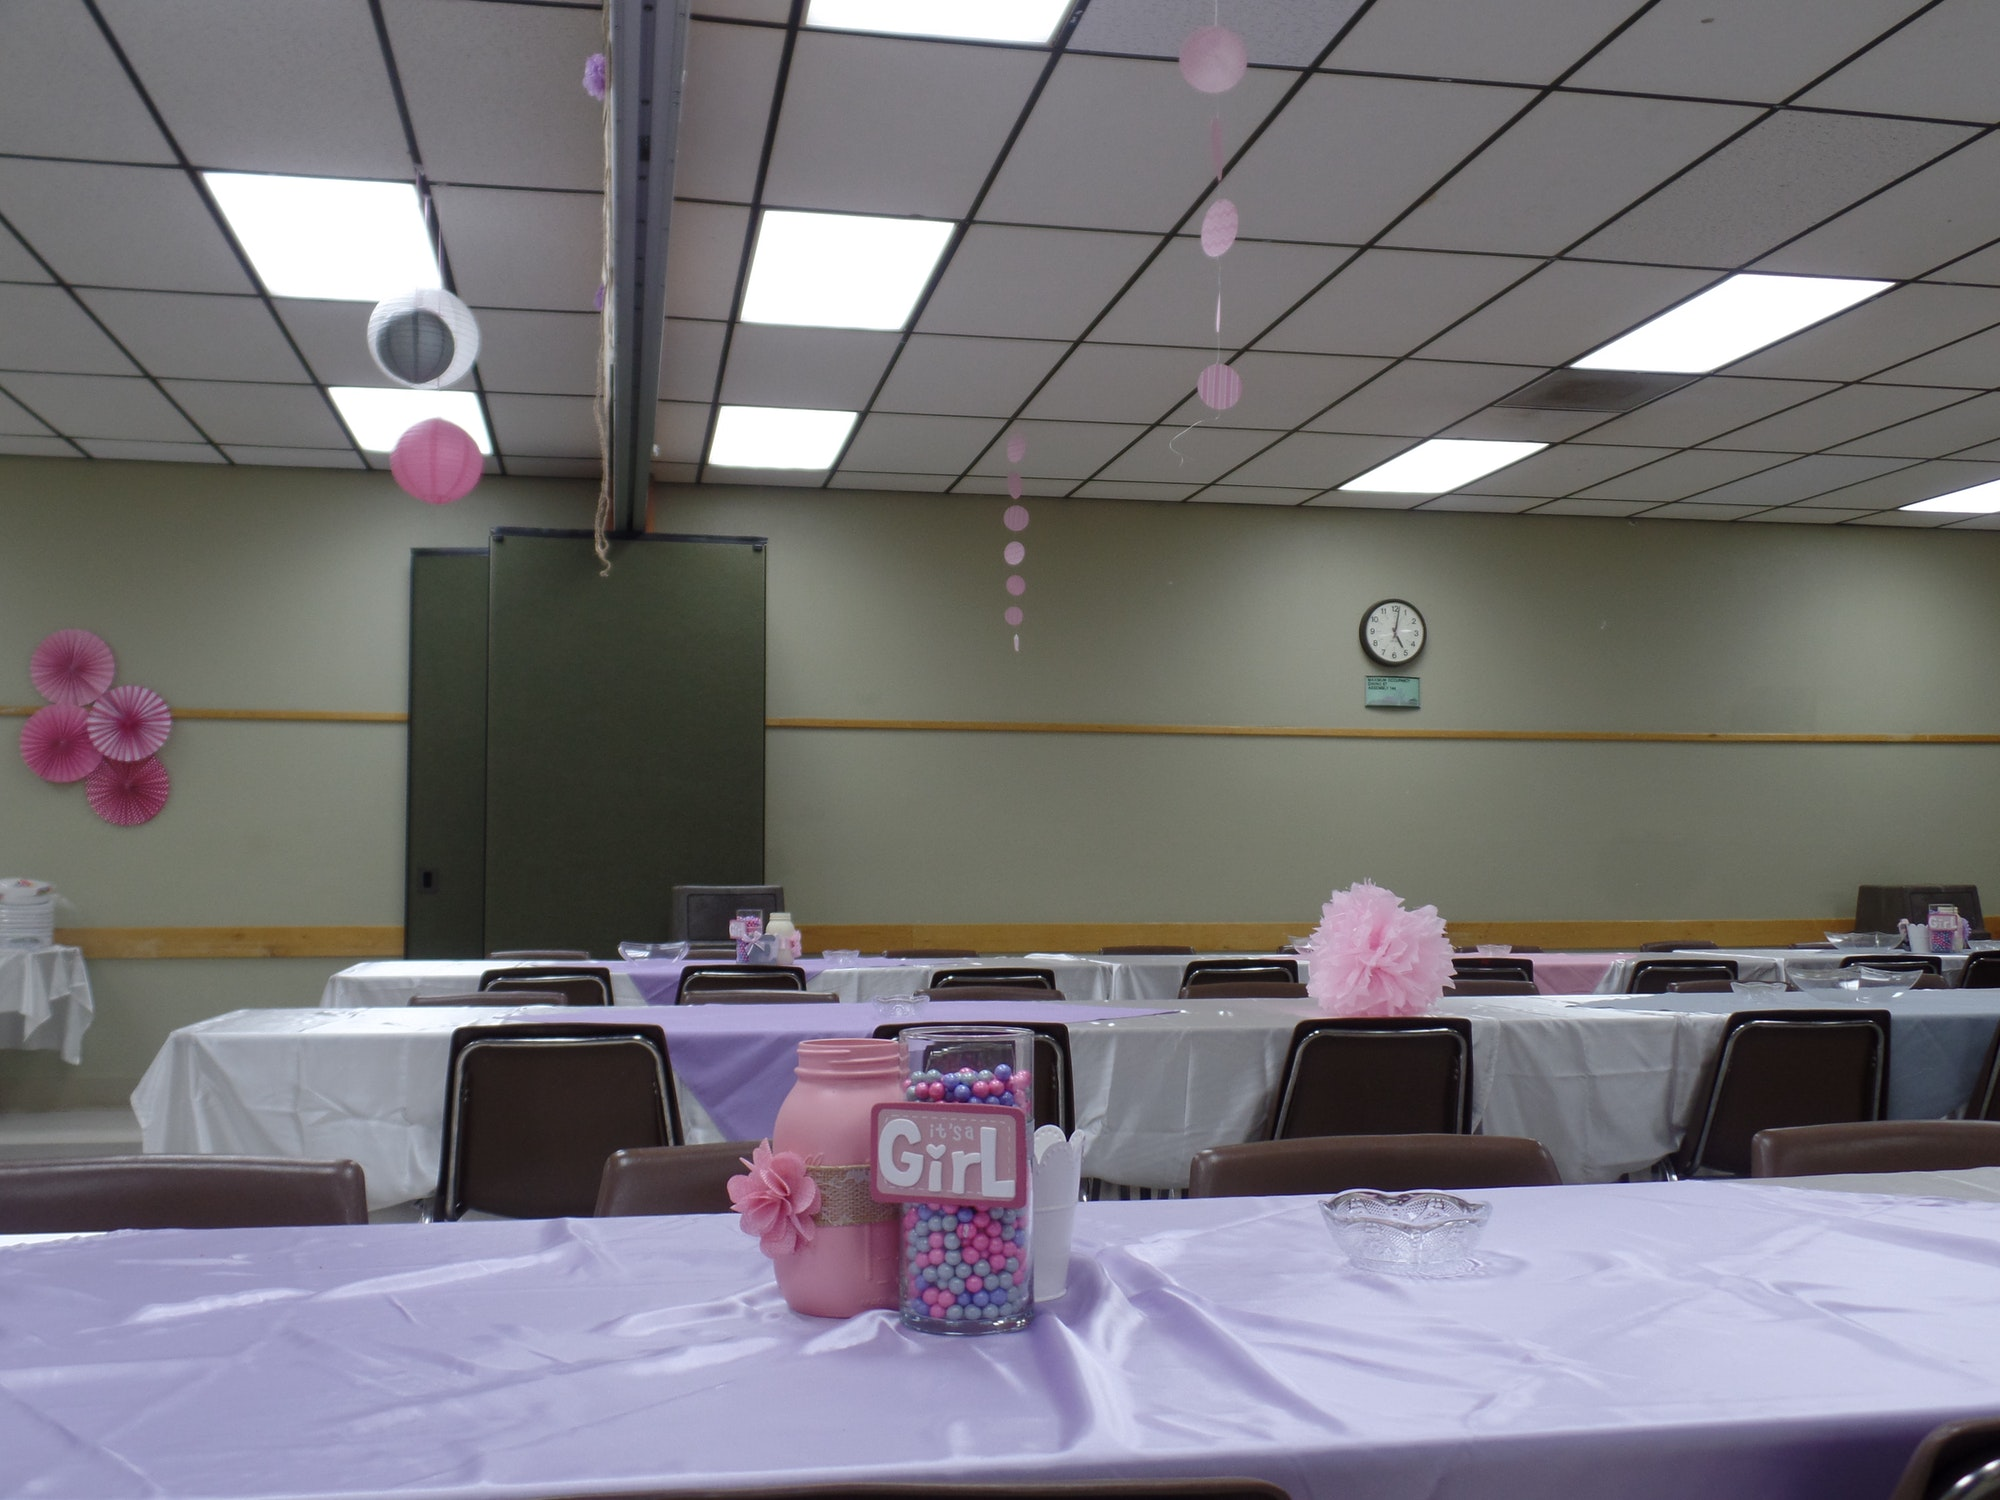 Inside Mojave Rooms at Lime Street Park Community Center with tables set up for a girl baby shower